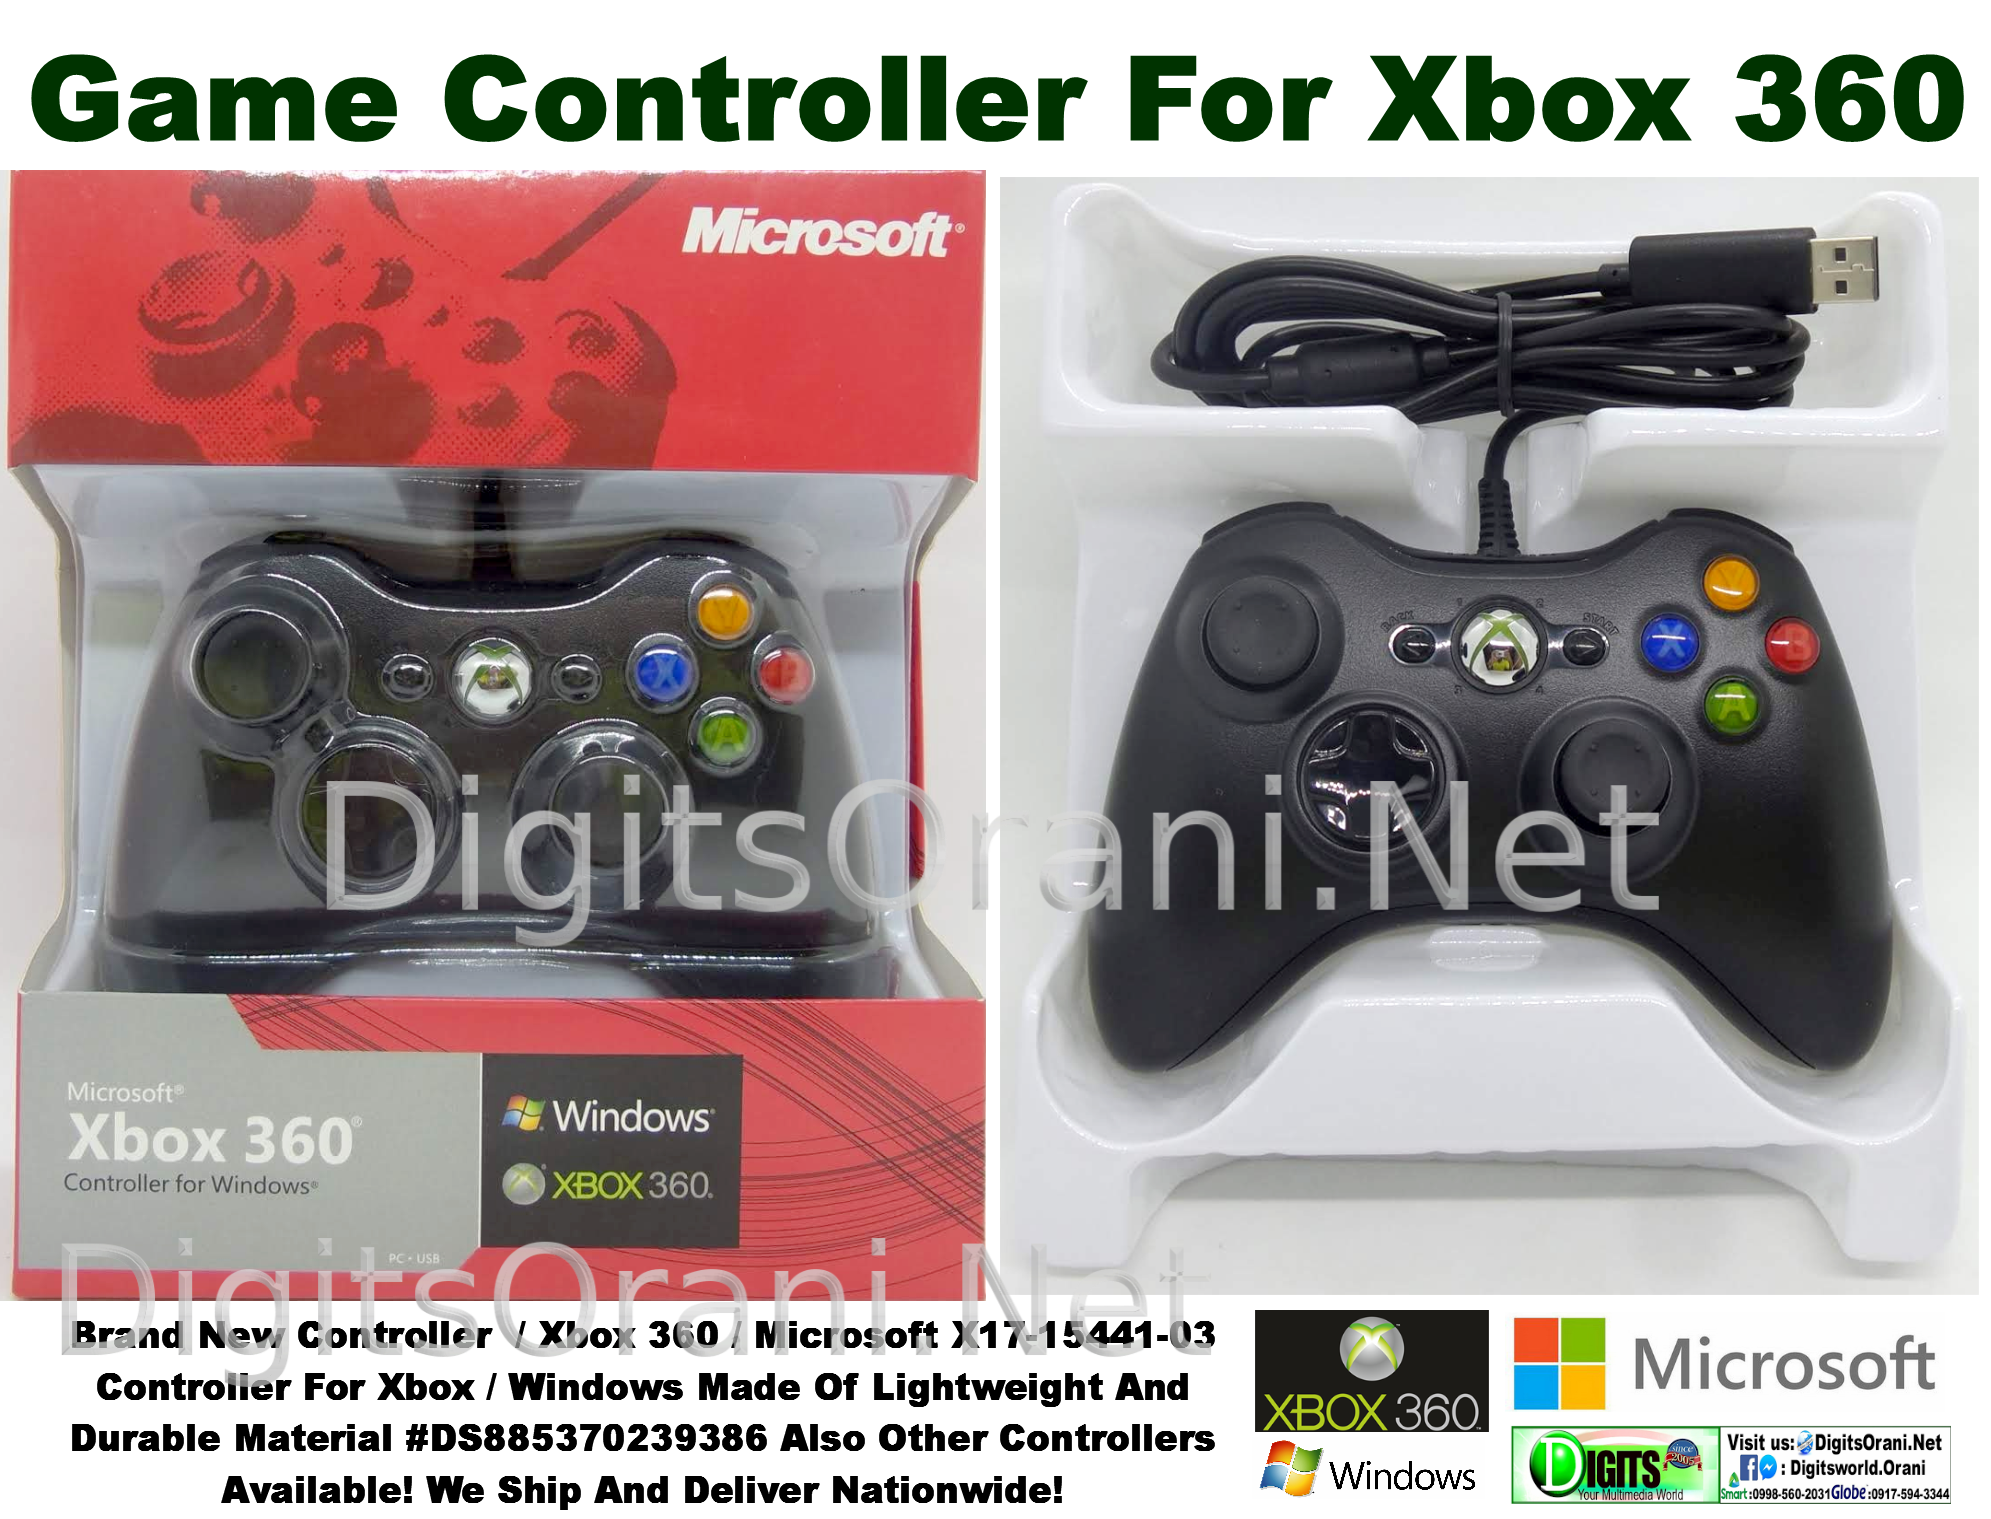 Controller For Xbox / Windows Microsoft X17-15441-03 Made Of Lightweight  And Durable Material #Ds4804567924290